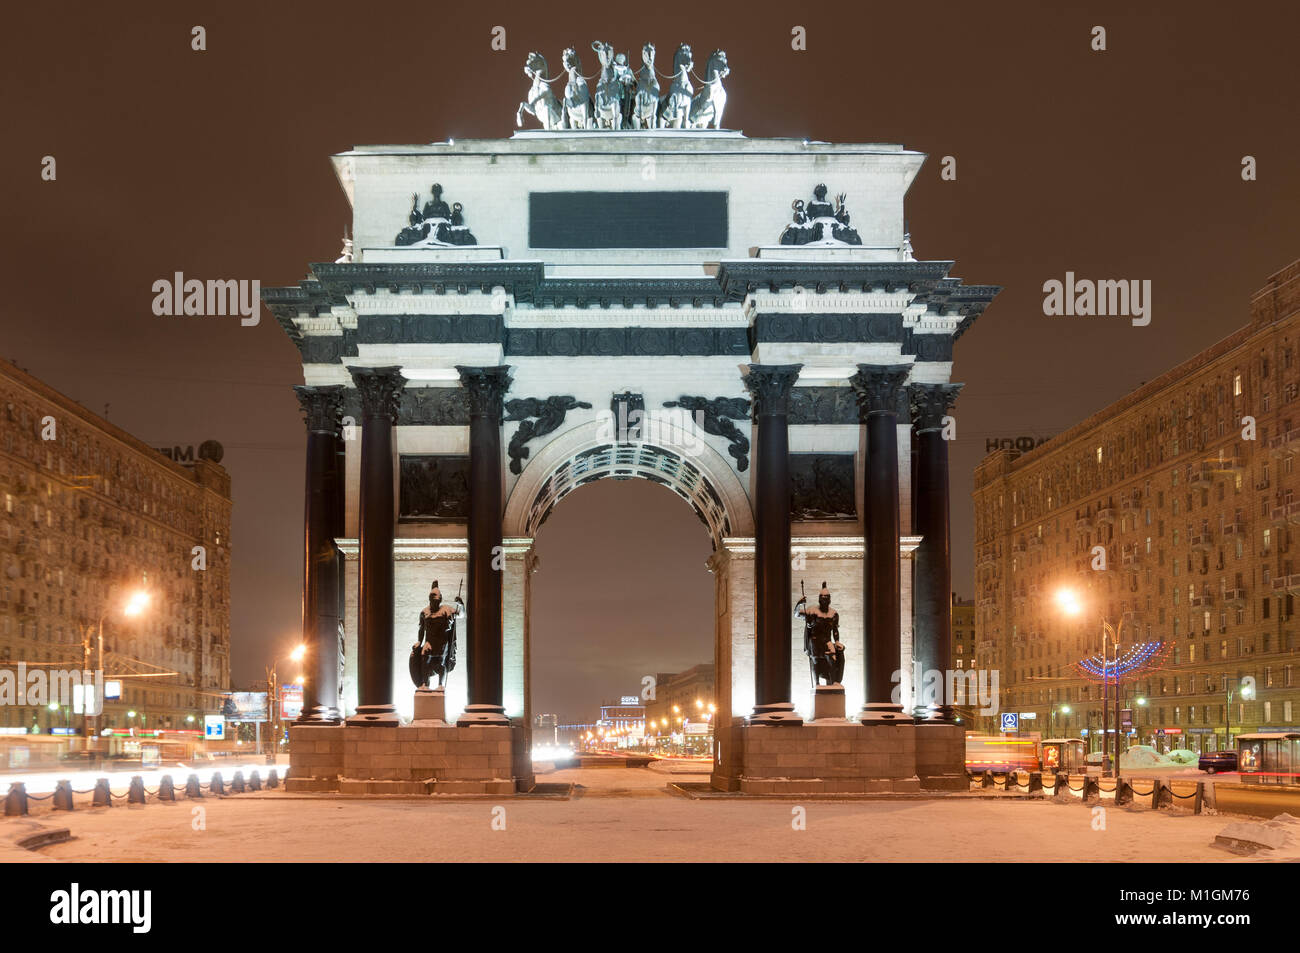 Triumphal Arch of Moscow to commemorate Russia's victory over Napoleon at night. - Stock Image